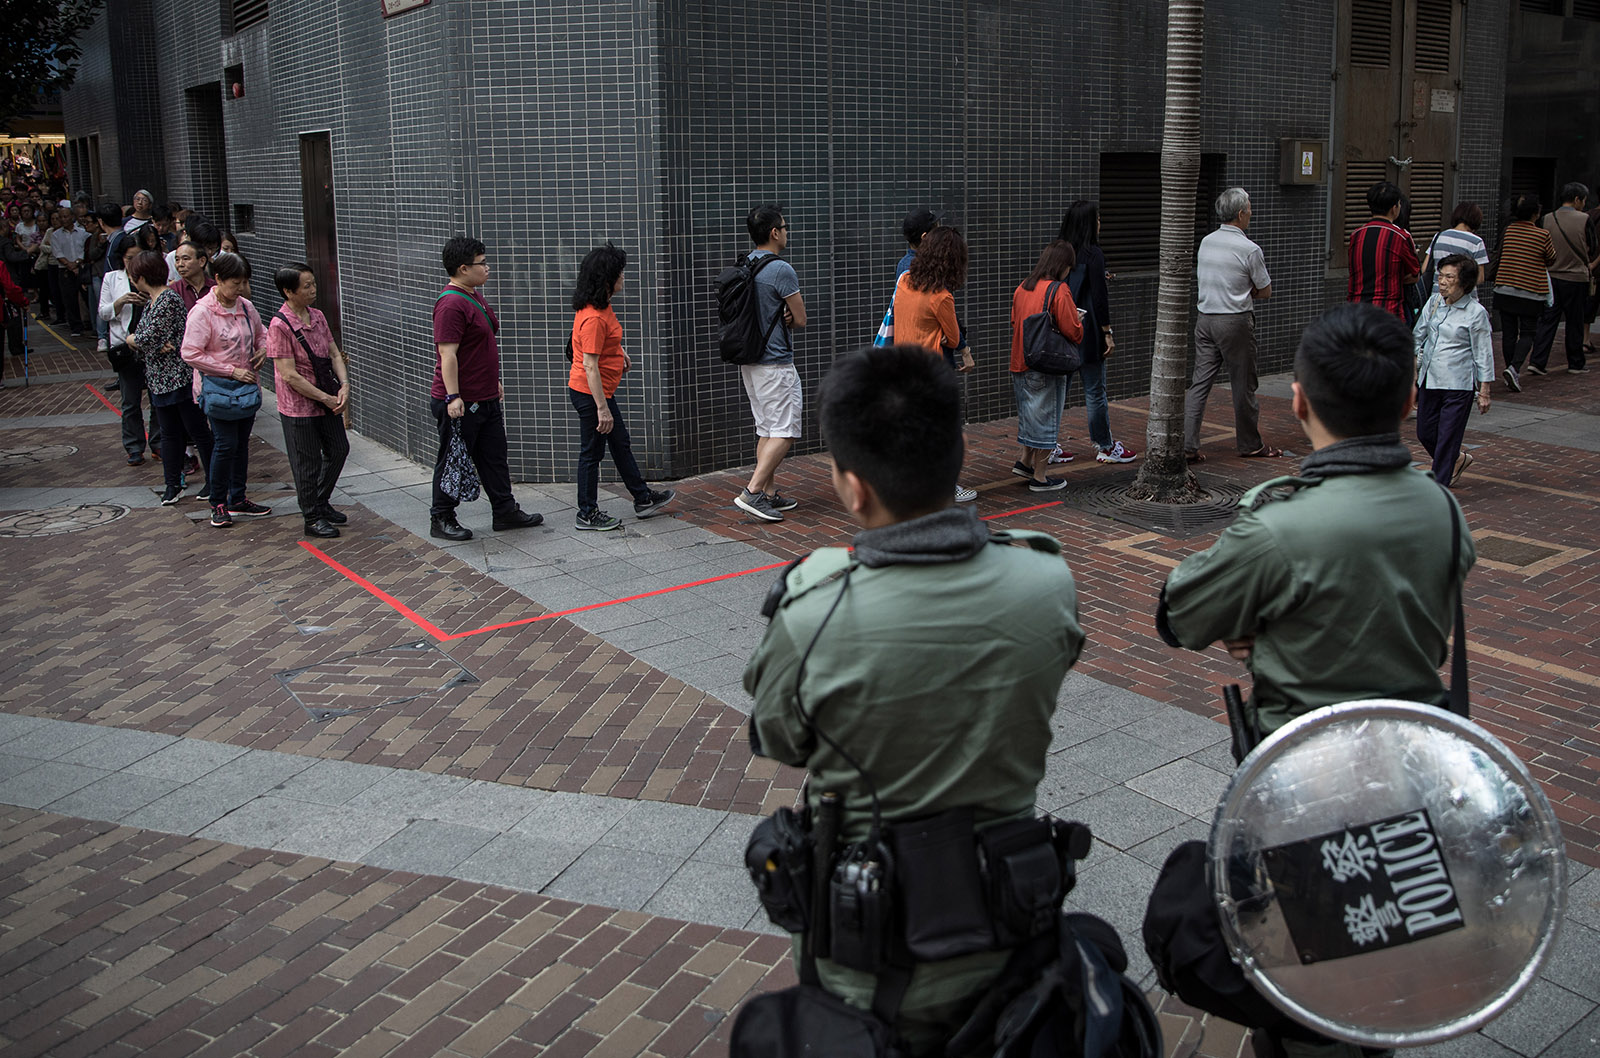 Police watching as people formed a line at a polling station to vote in district council elections, Hong Kong, November 24, 2019